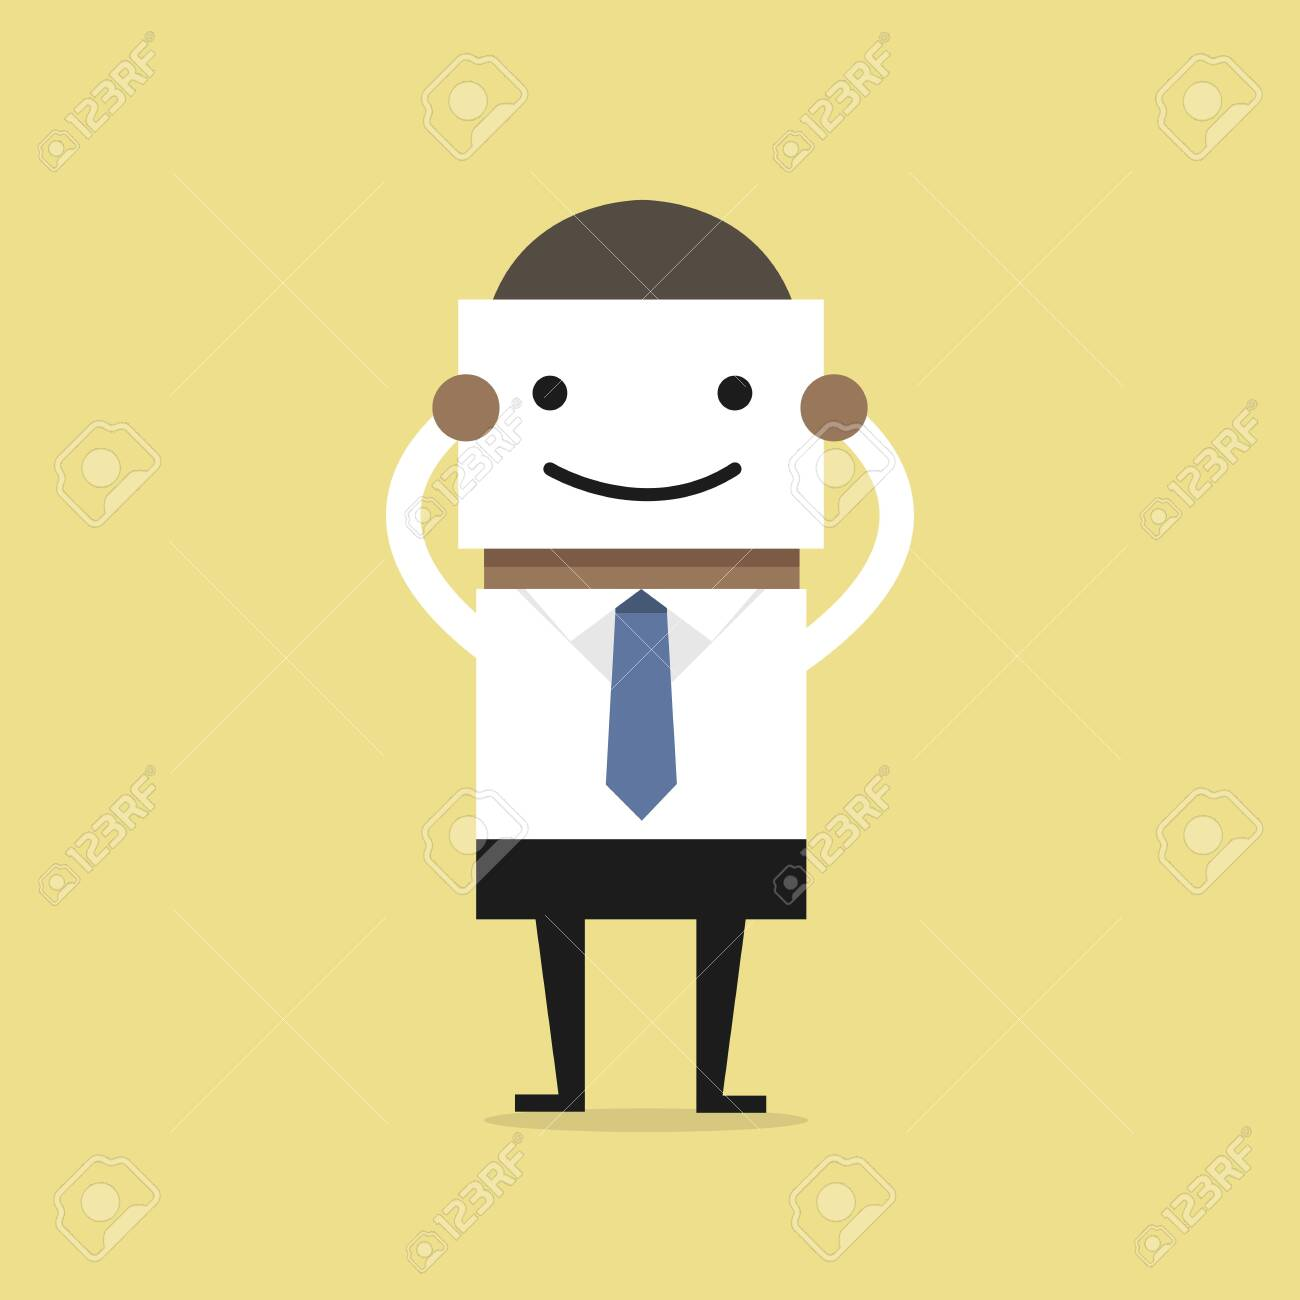 African businessman hide his real face by holding smile mask. - 142935984